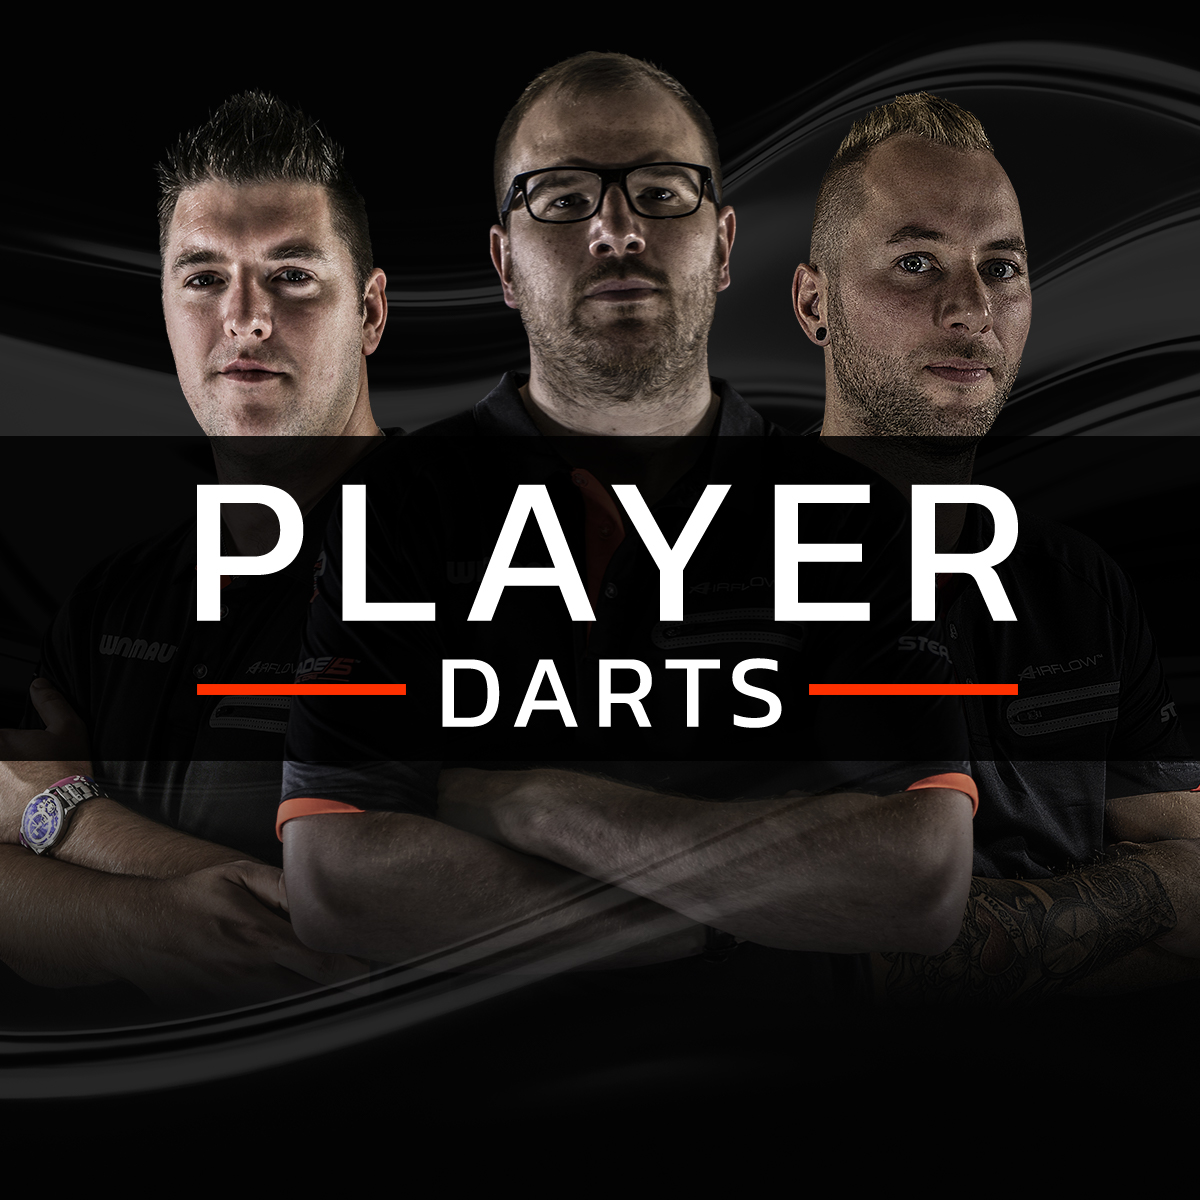 Player Darts